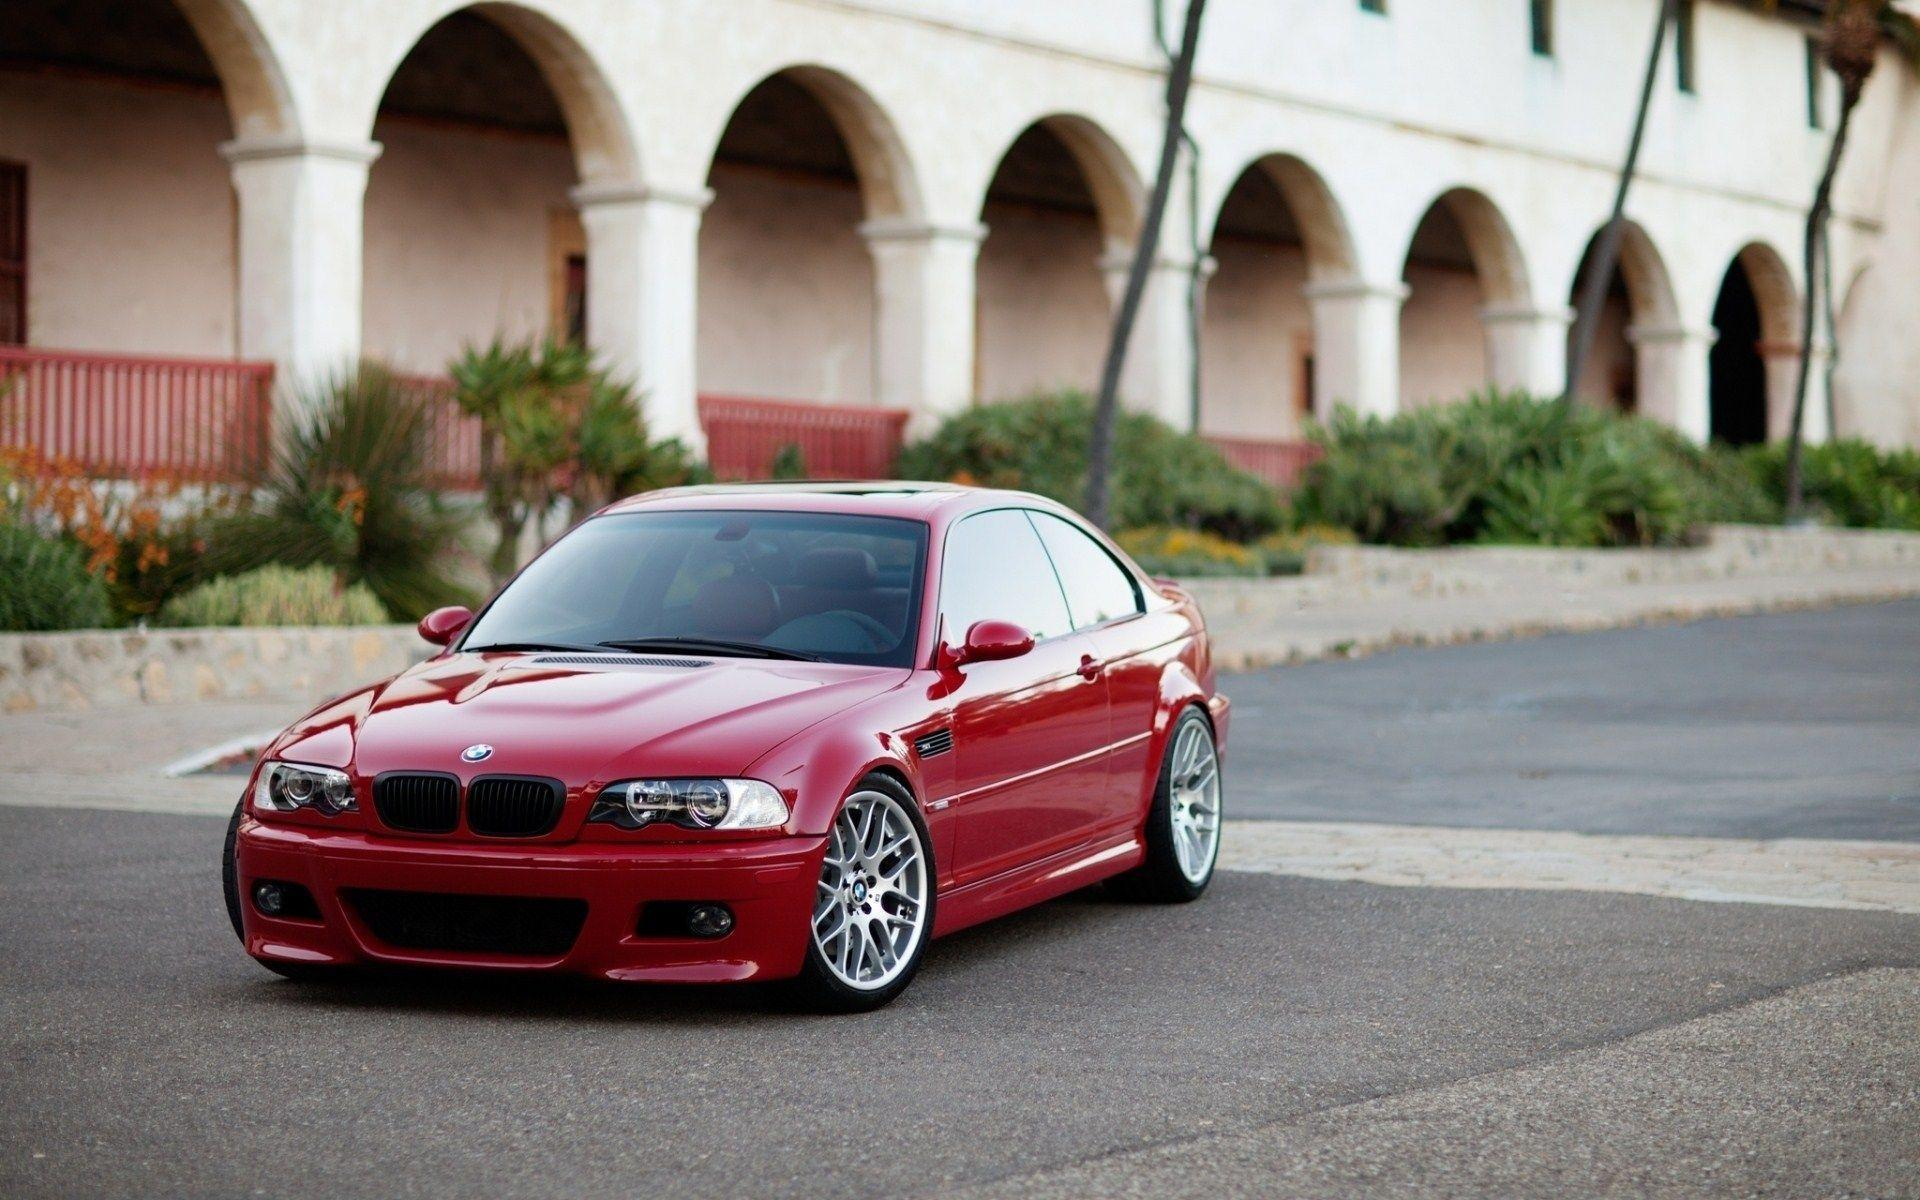 BMW M3 E46 Red Building HD Wallpapers